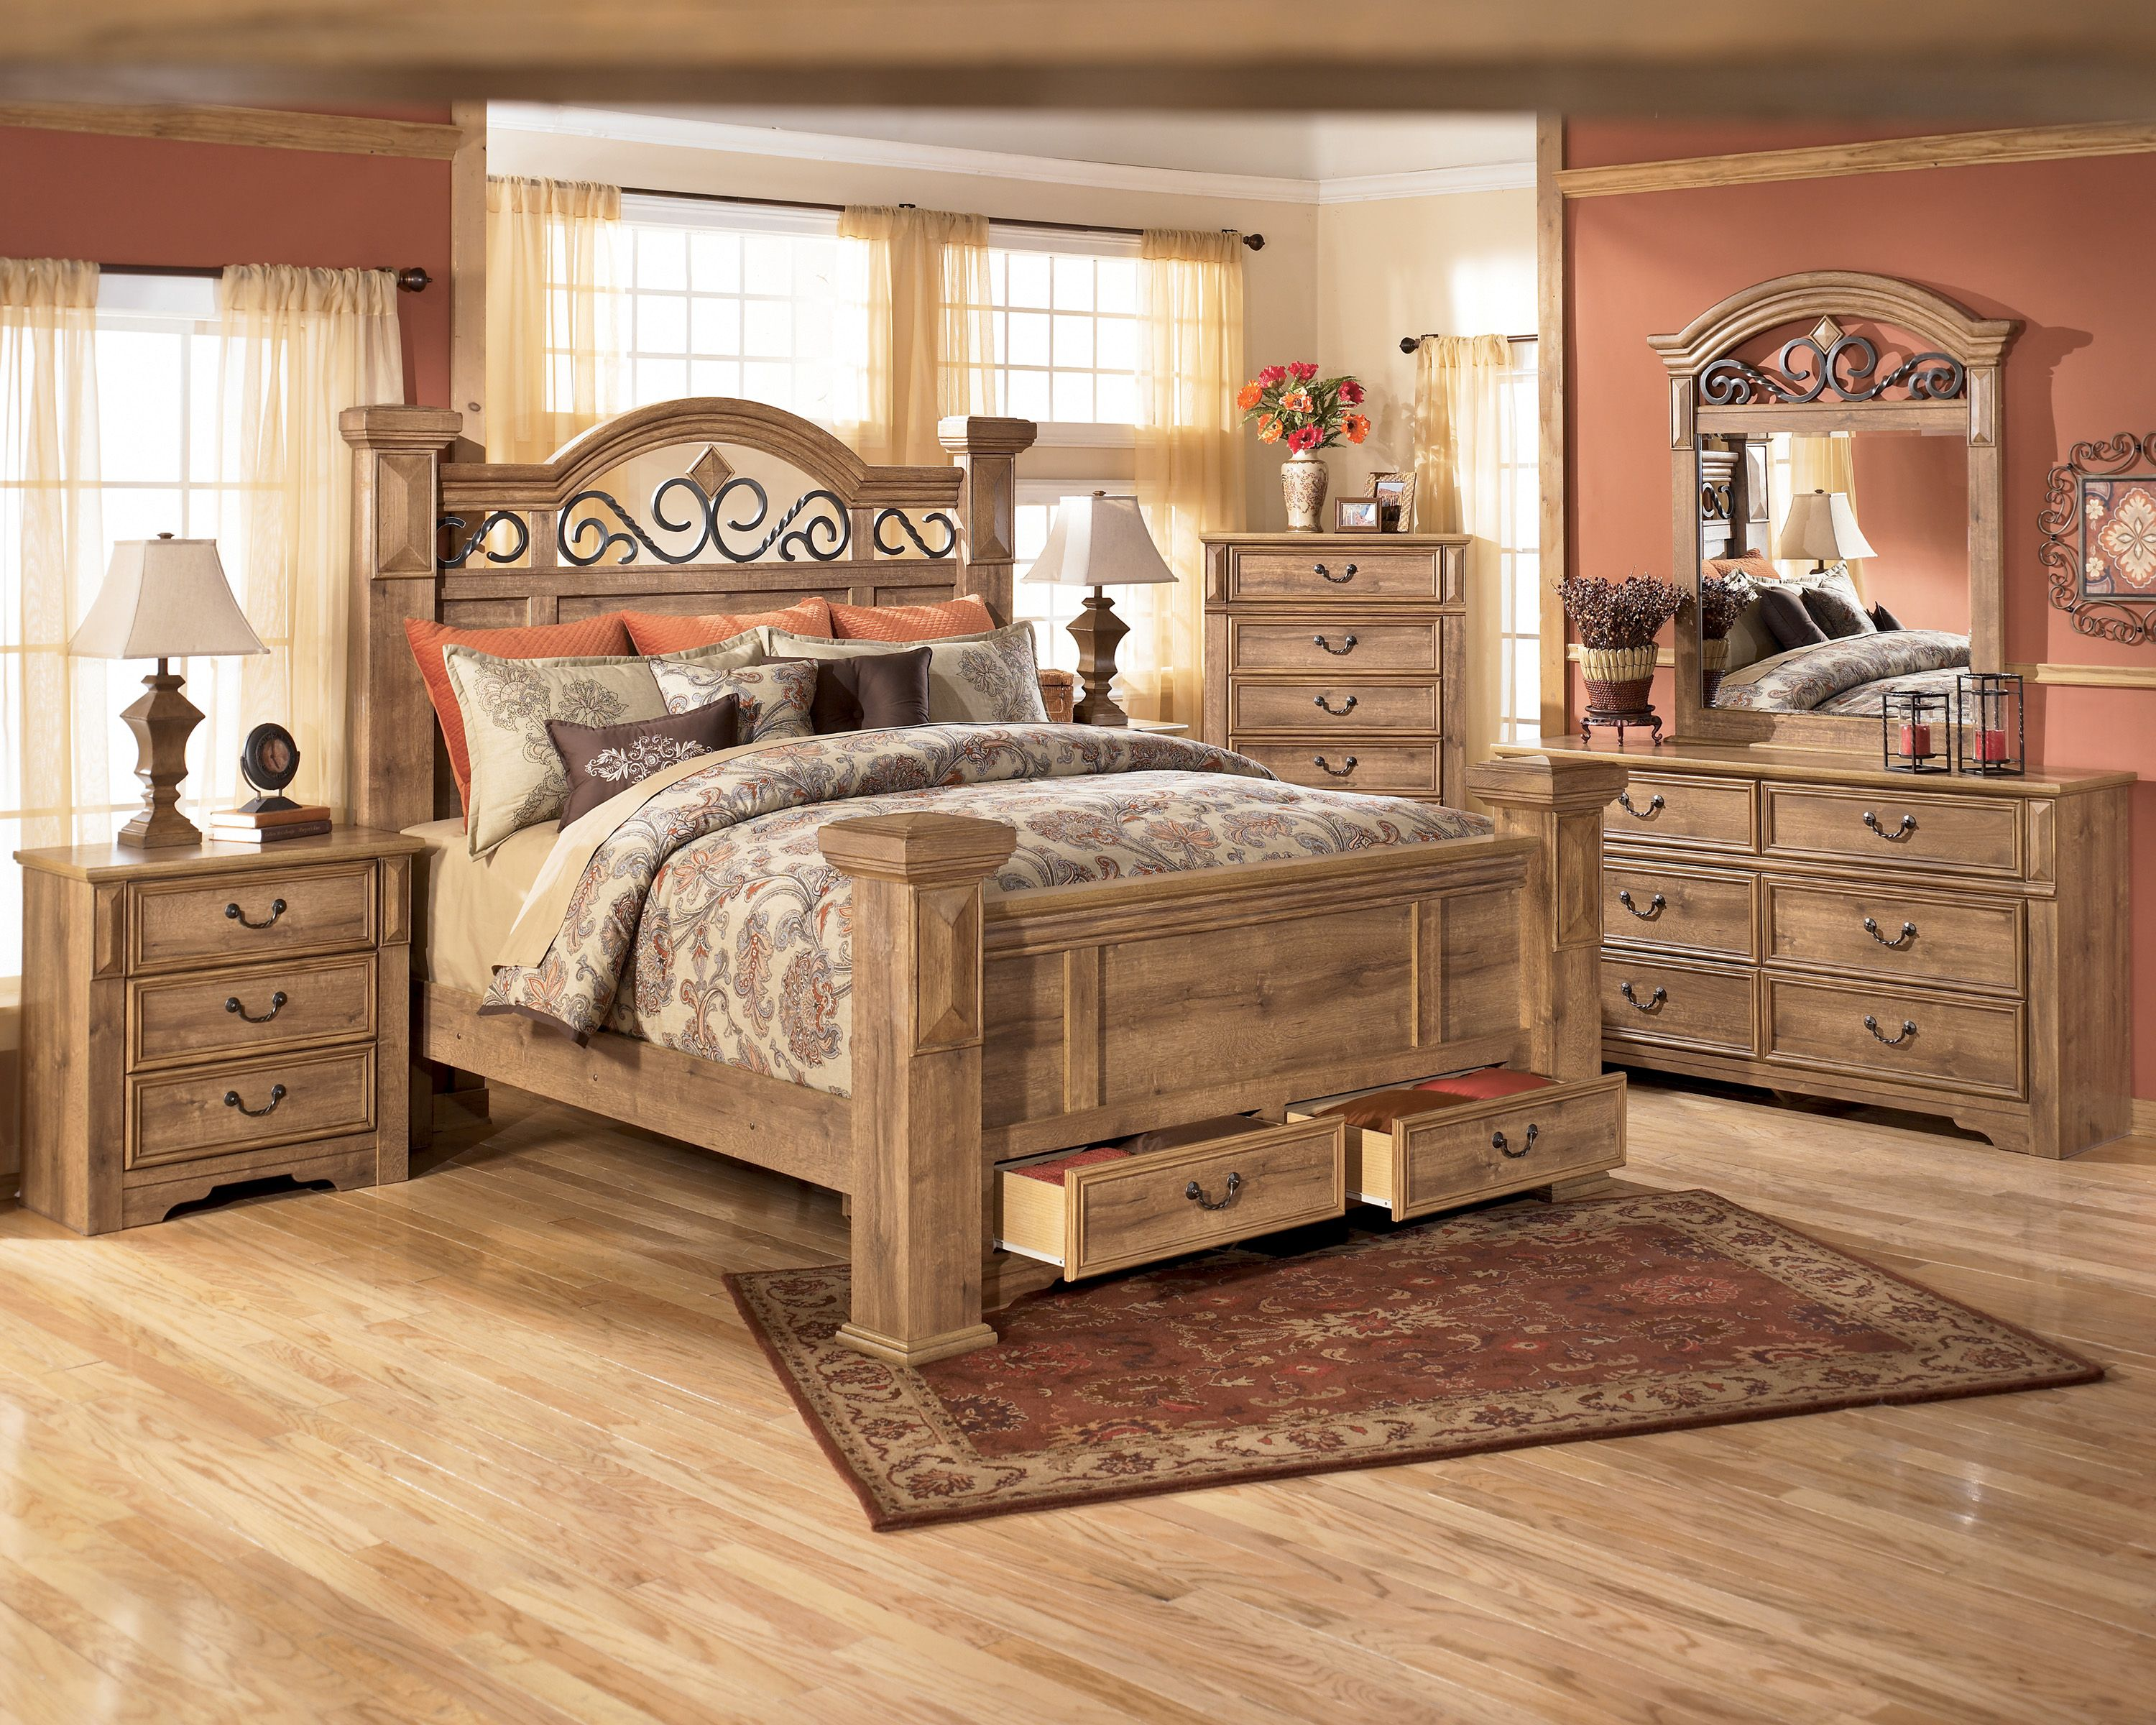 Best King Size Bed Set Rosalinda  Bedroom Sets in 2019